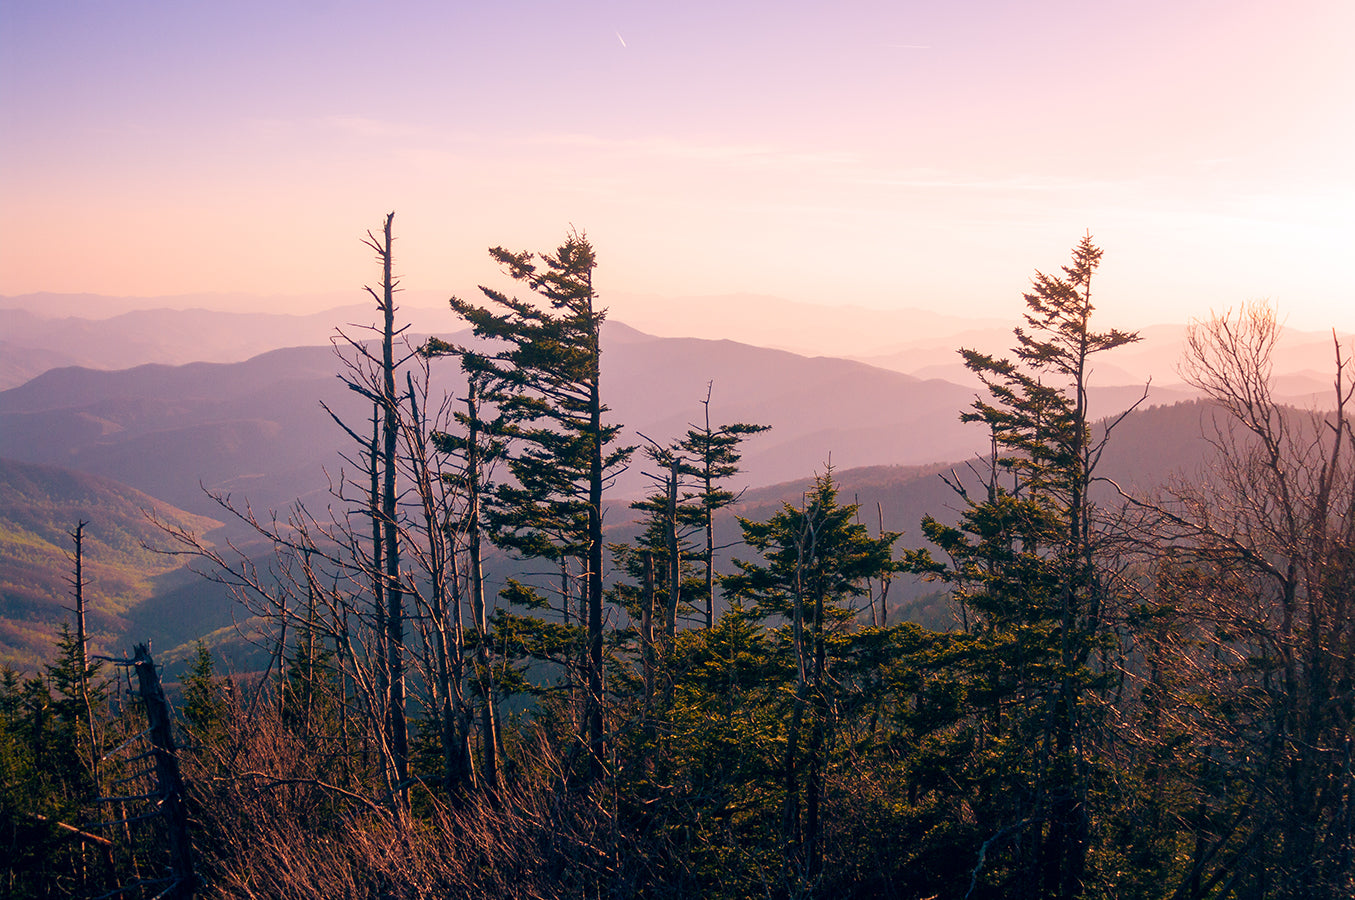 Sunset in the Smoky Mountains Photo Print